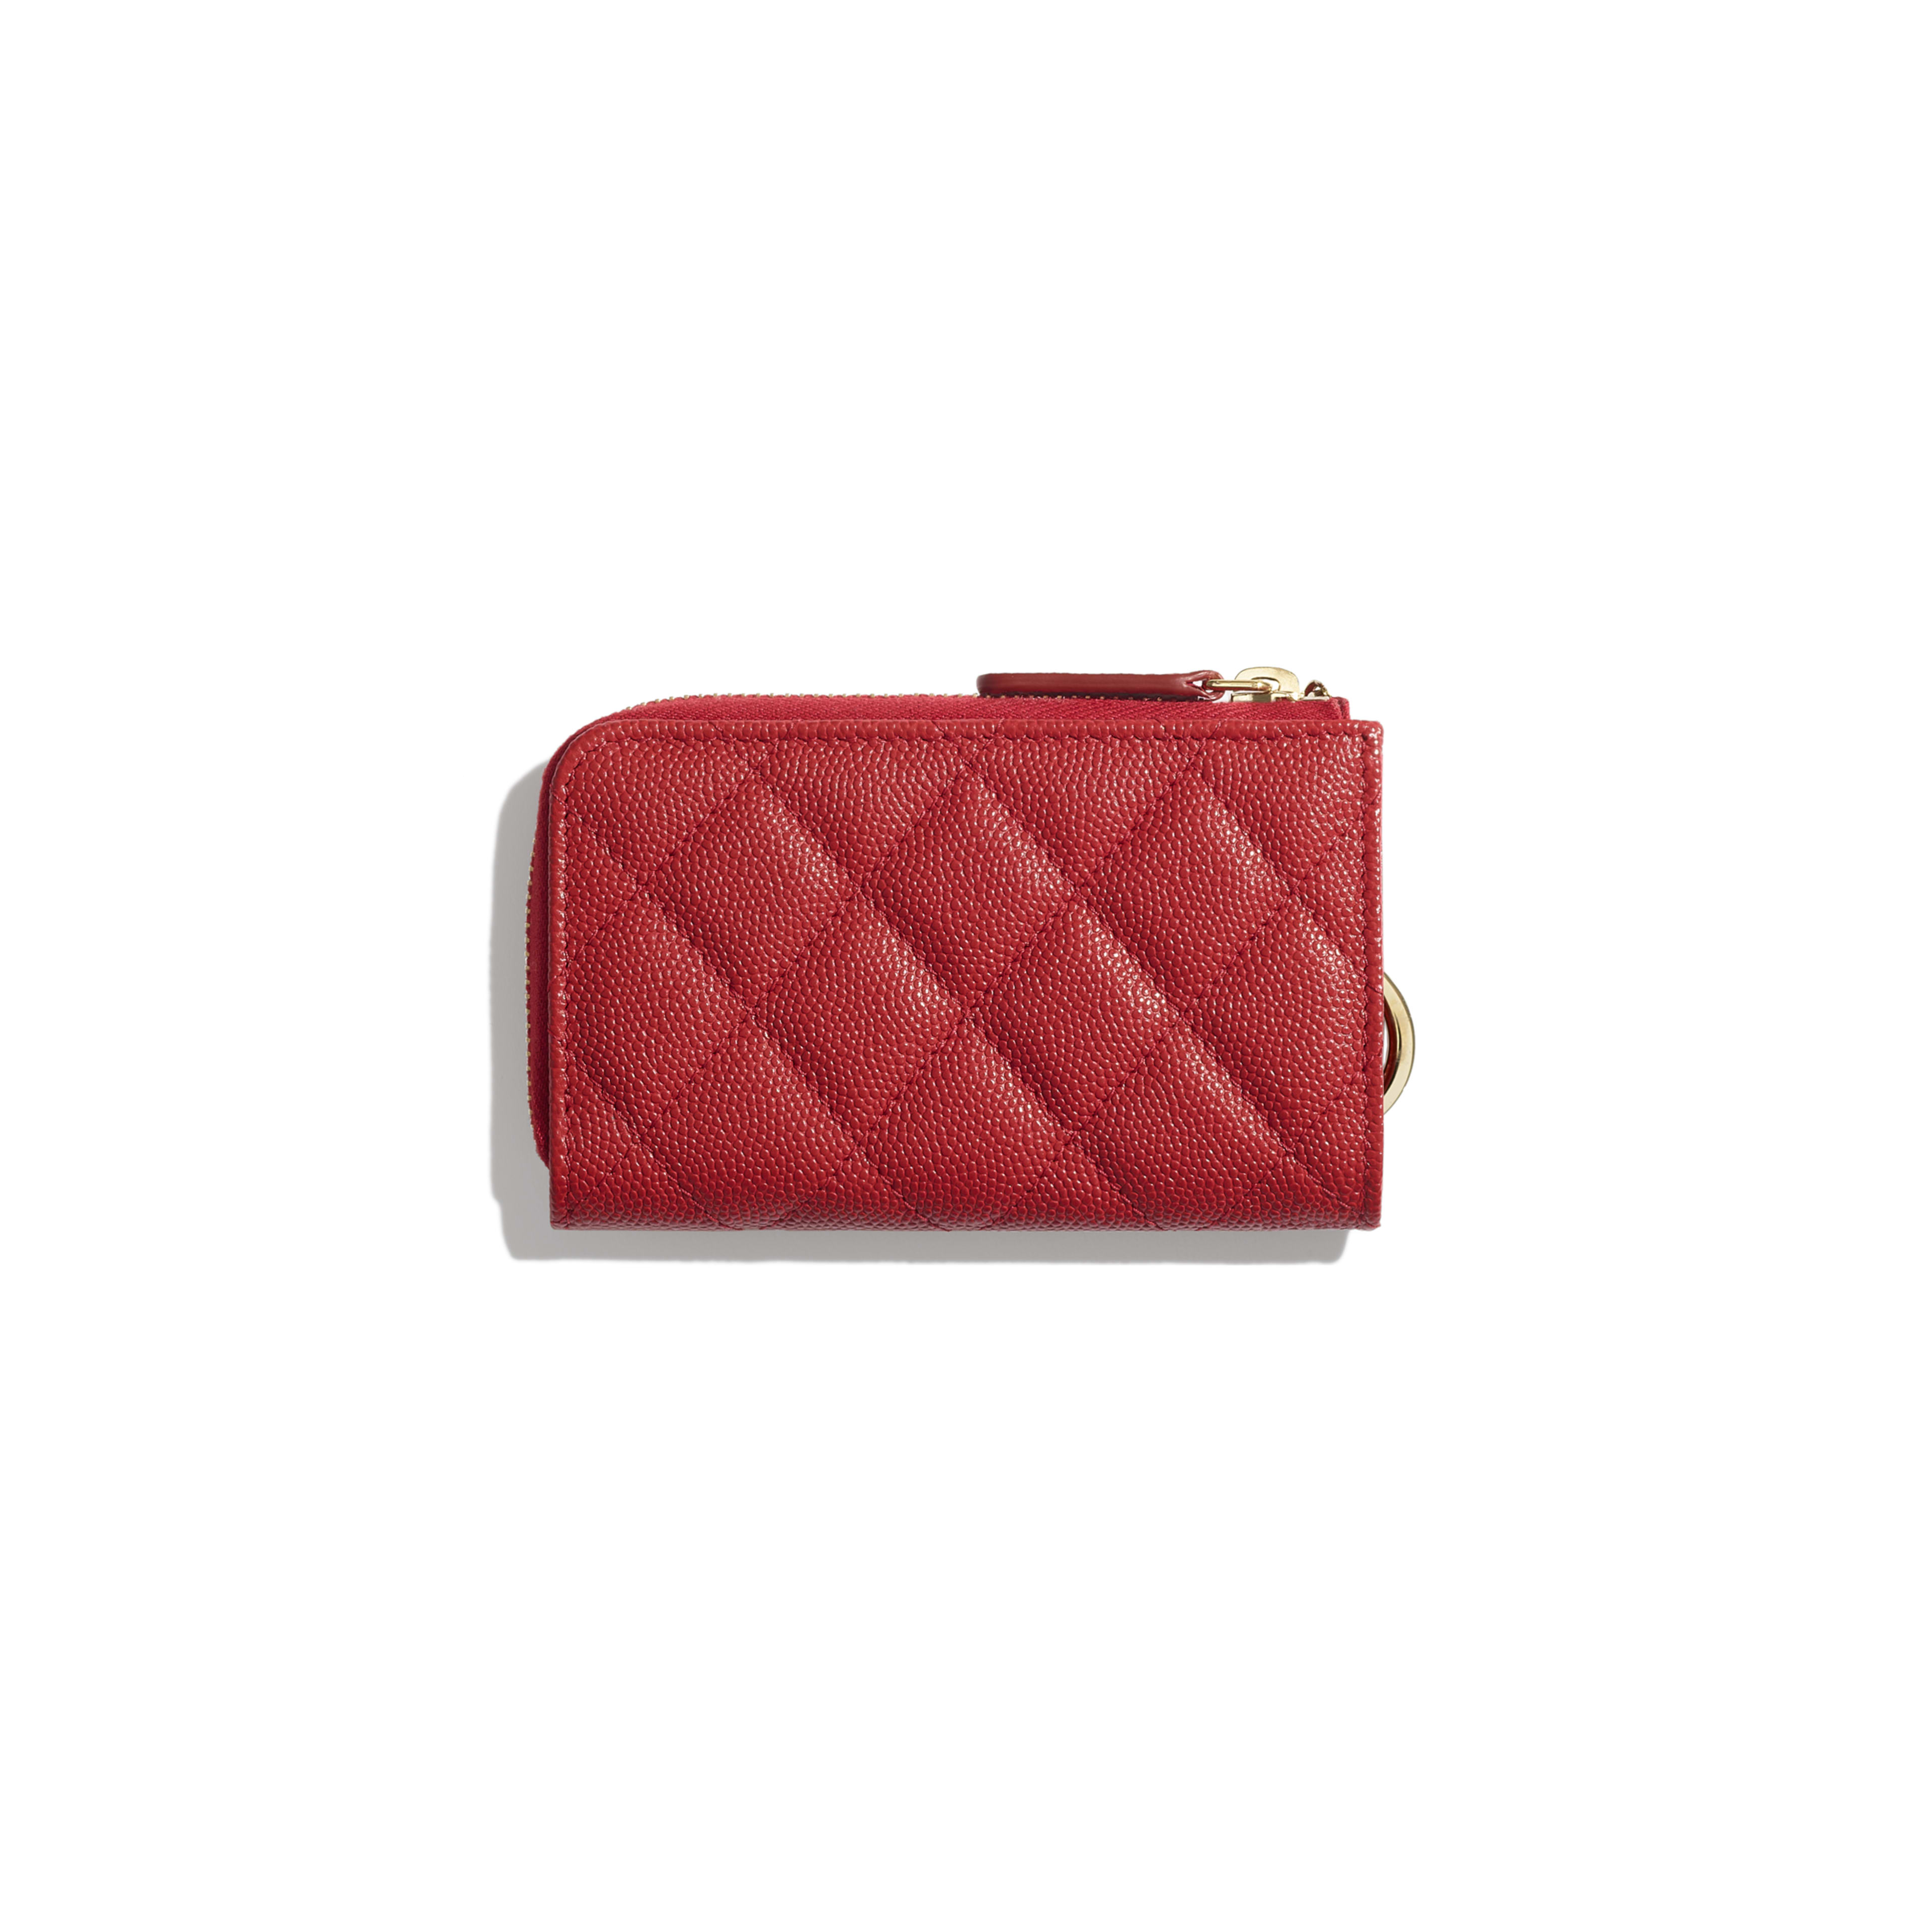 Classic Zipped Key Holder - Red - Grained Calfskin & Gold-Tone Metal - Alternative view - see full sized version